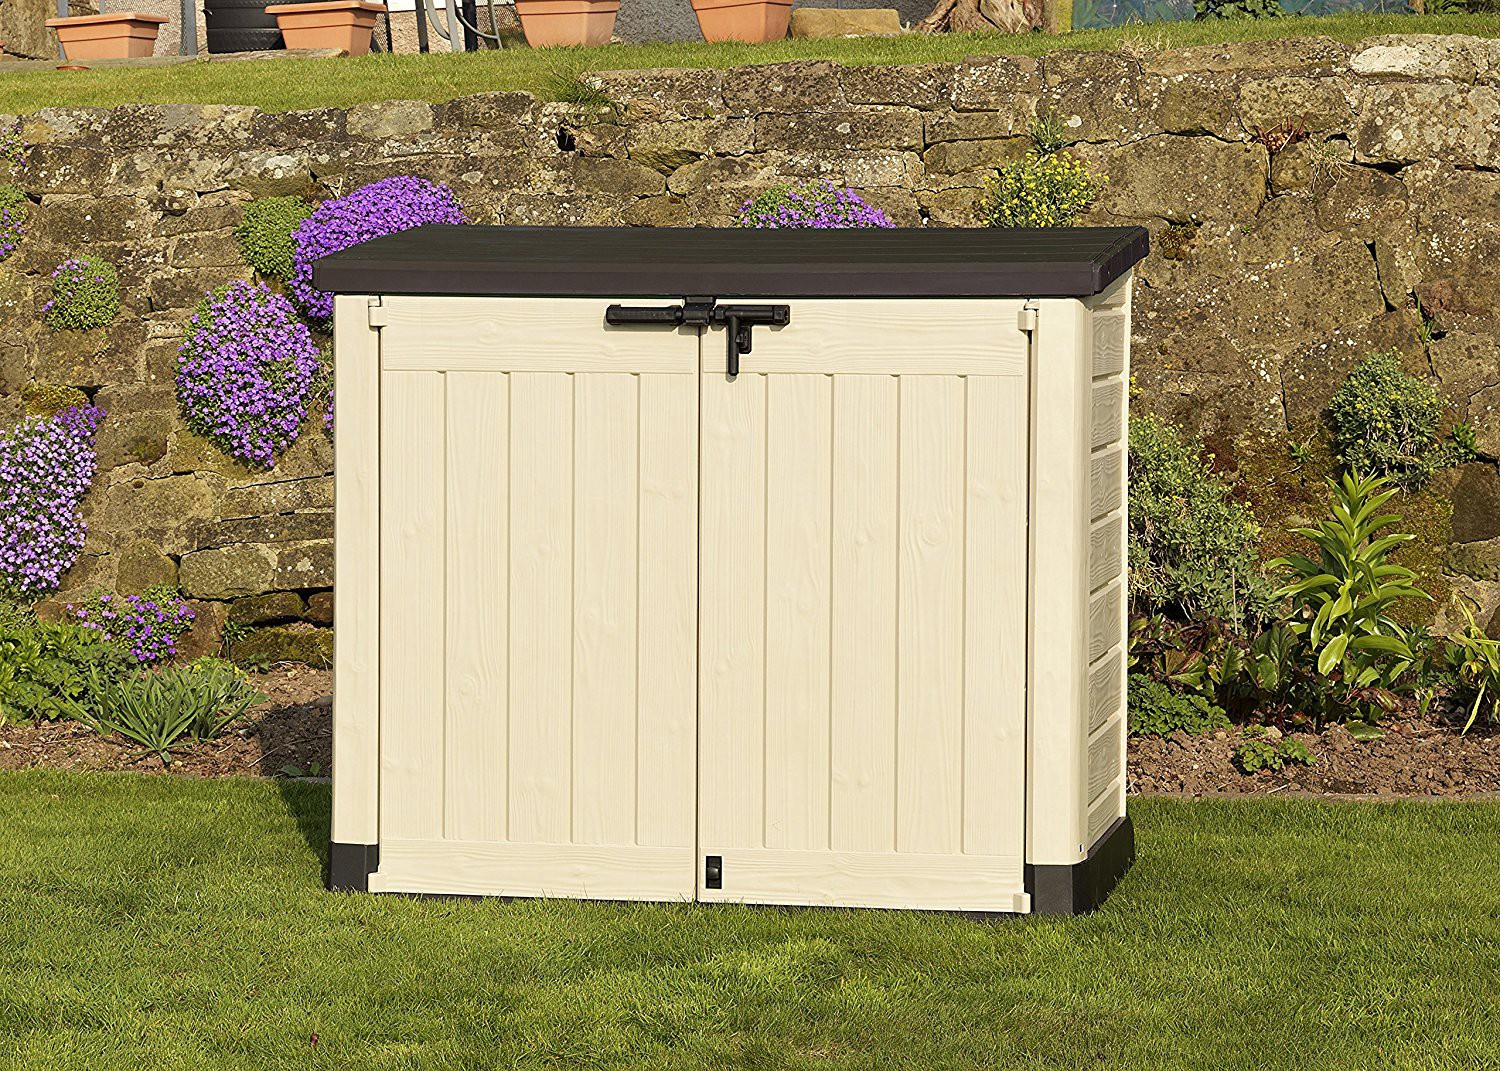 Keter U0027Store It Outu0027 Max Plastic Outdoor Garden Storage Shed